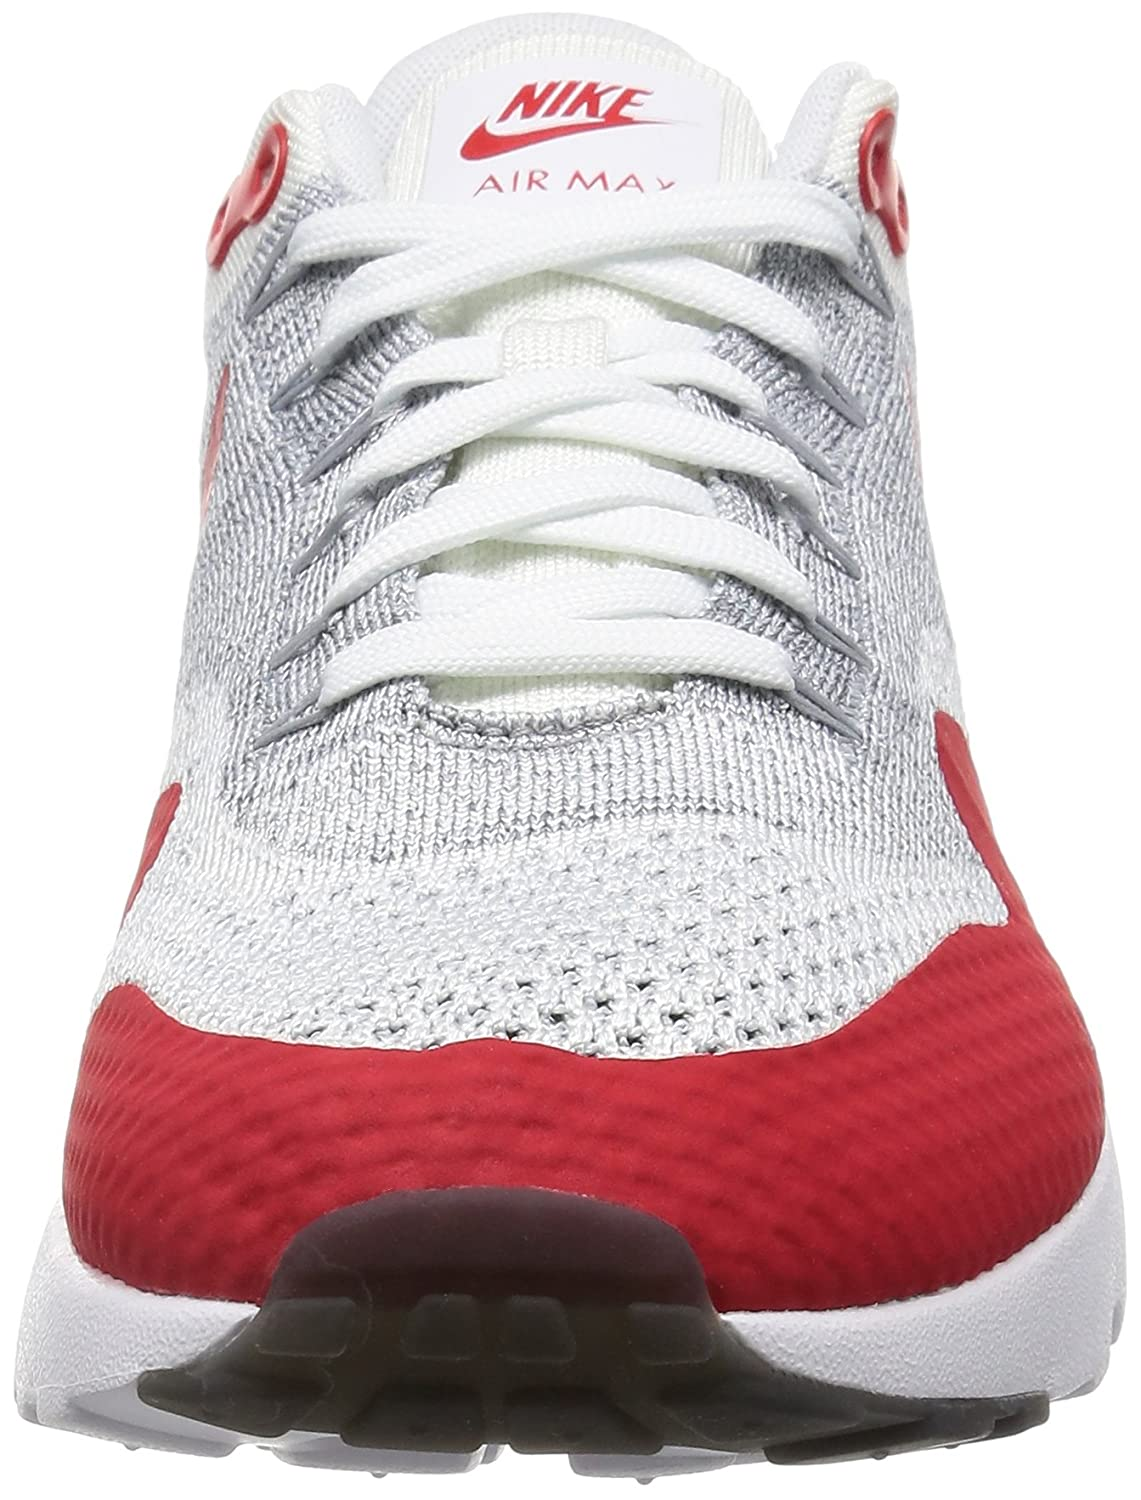 quality design 870d1 1bb03 Amazon.com   Nike Mens Air Max 1 Ultra Flyknit White University Red Woven  Size 8   Shoes